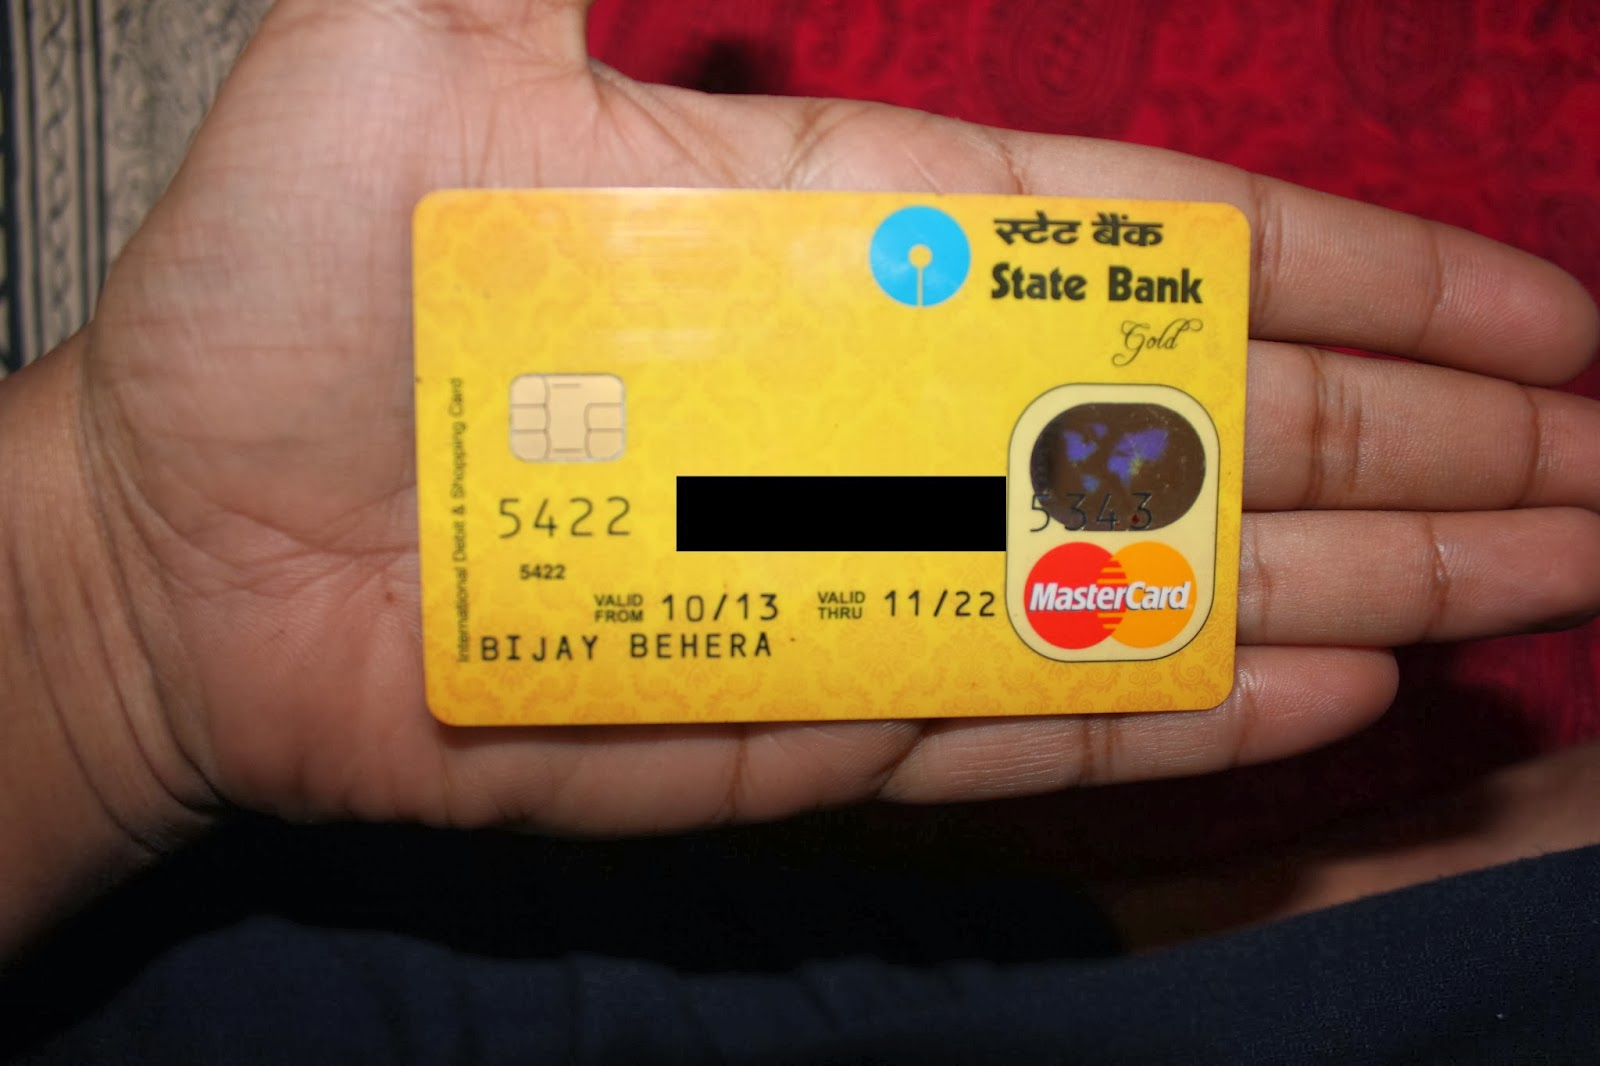 State Bank of India Debit and Prepaid Cards